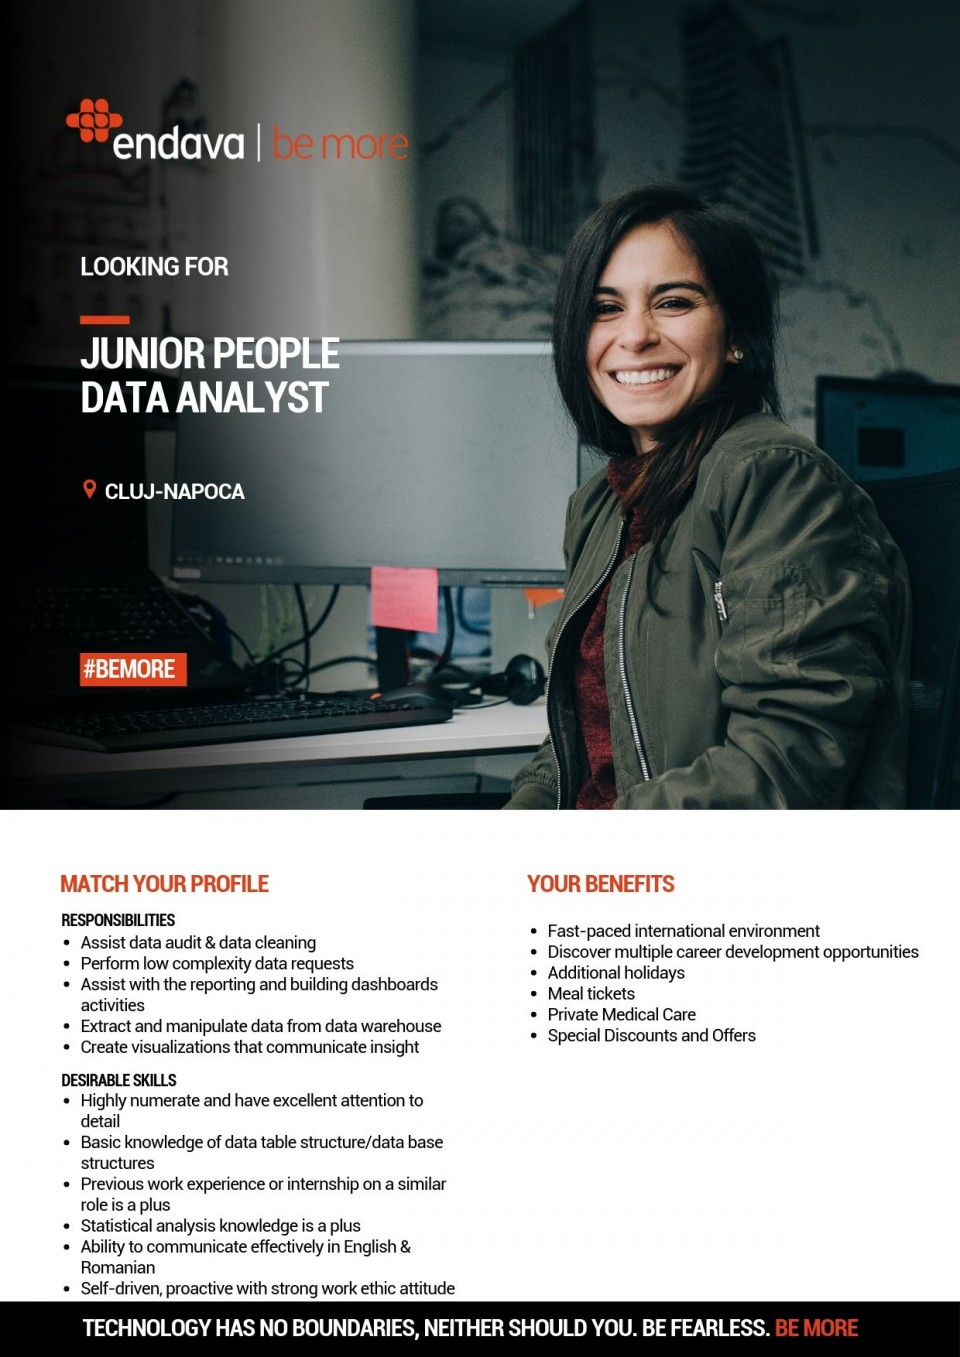 Highly numerate and have excellent attention to detail Basic knowledge of data table structure/data base structures Previous work experience or internship on a similar role is a plus Statistical analysis knowledge is a plus Ability to communicate effectively in English & Romanian Self-driven, proactive with strong work ethic attitude We exist to create an environment and a culture that breeds success by caring for our customers as individuals and enabling our people to be the best that they can be.    We focus on helping people to be successful: the people who work for us, the people who engage with us, and the people who use the systems and applications we design, build, and operate.  We are now looking for an enthusiastic Junior People Data Analyst who will be responsible to:   Assist data audit & data cleaning Perform low complexity data requests Assist with the reporting and building dashboards activities Extract and manipulate data from data warehouse Create visualizations that communicate insight Endava is a global technology company, with over 18 years of experience of working with some of the world's leading Finance, Insurance, Telecommunications, Media, Technology, and Retail companies. Through the Digital Evolution, Agile Transformation and Automation solutions, Endava is helping clients be more engaging, responsive and efficient. Endava has over 5 300 employees located in offices in North America and Western Europe and delivery centres in Colombia, Moldova, Romania, Macedonia, Serbia and Bulgaria.Along with investing in long term customer relationships, Endava recognised the importance of providing rewarding and challenging careers for people and, by doing so, has established itself as the employer of choice for the best and brightest engineers.